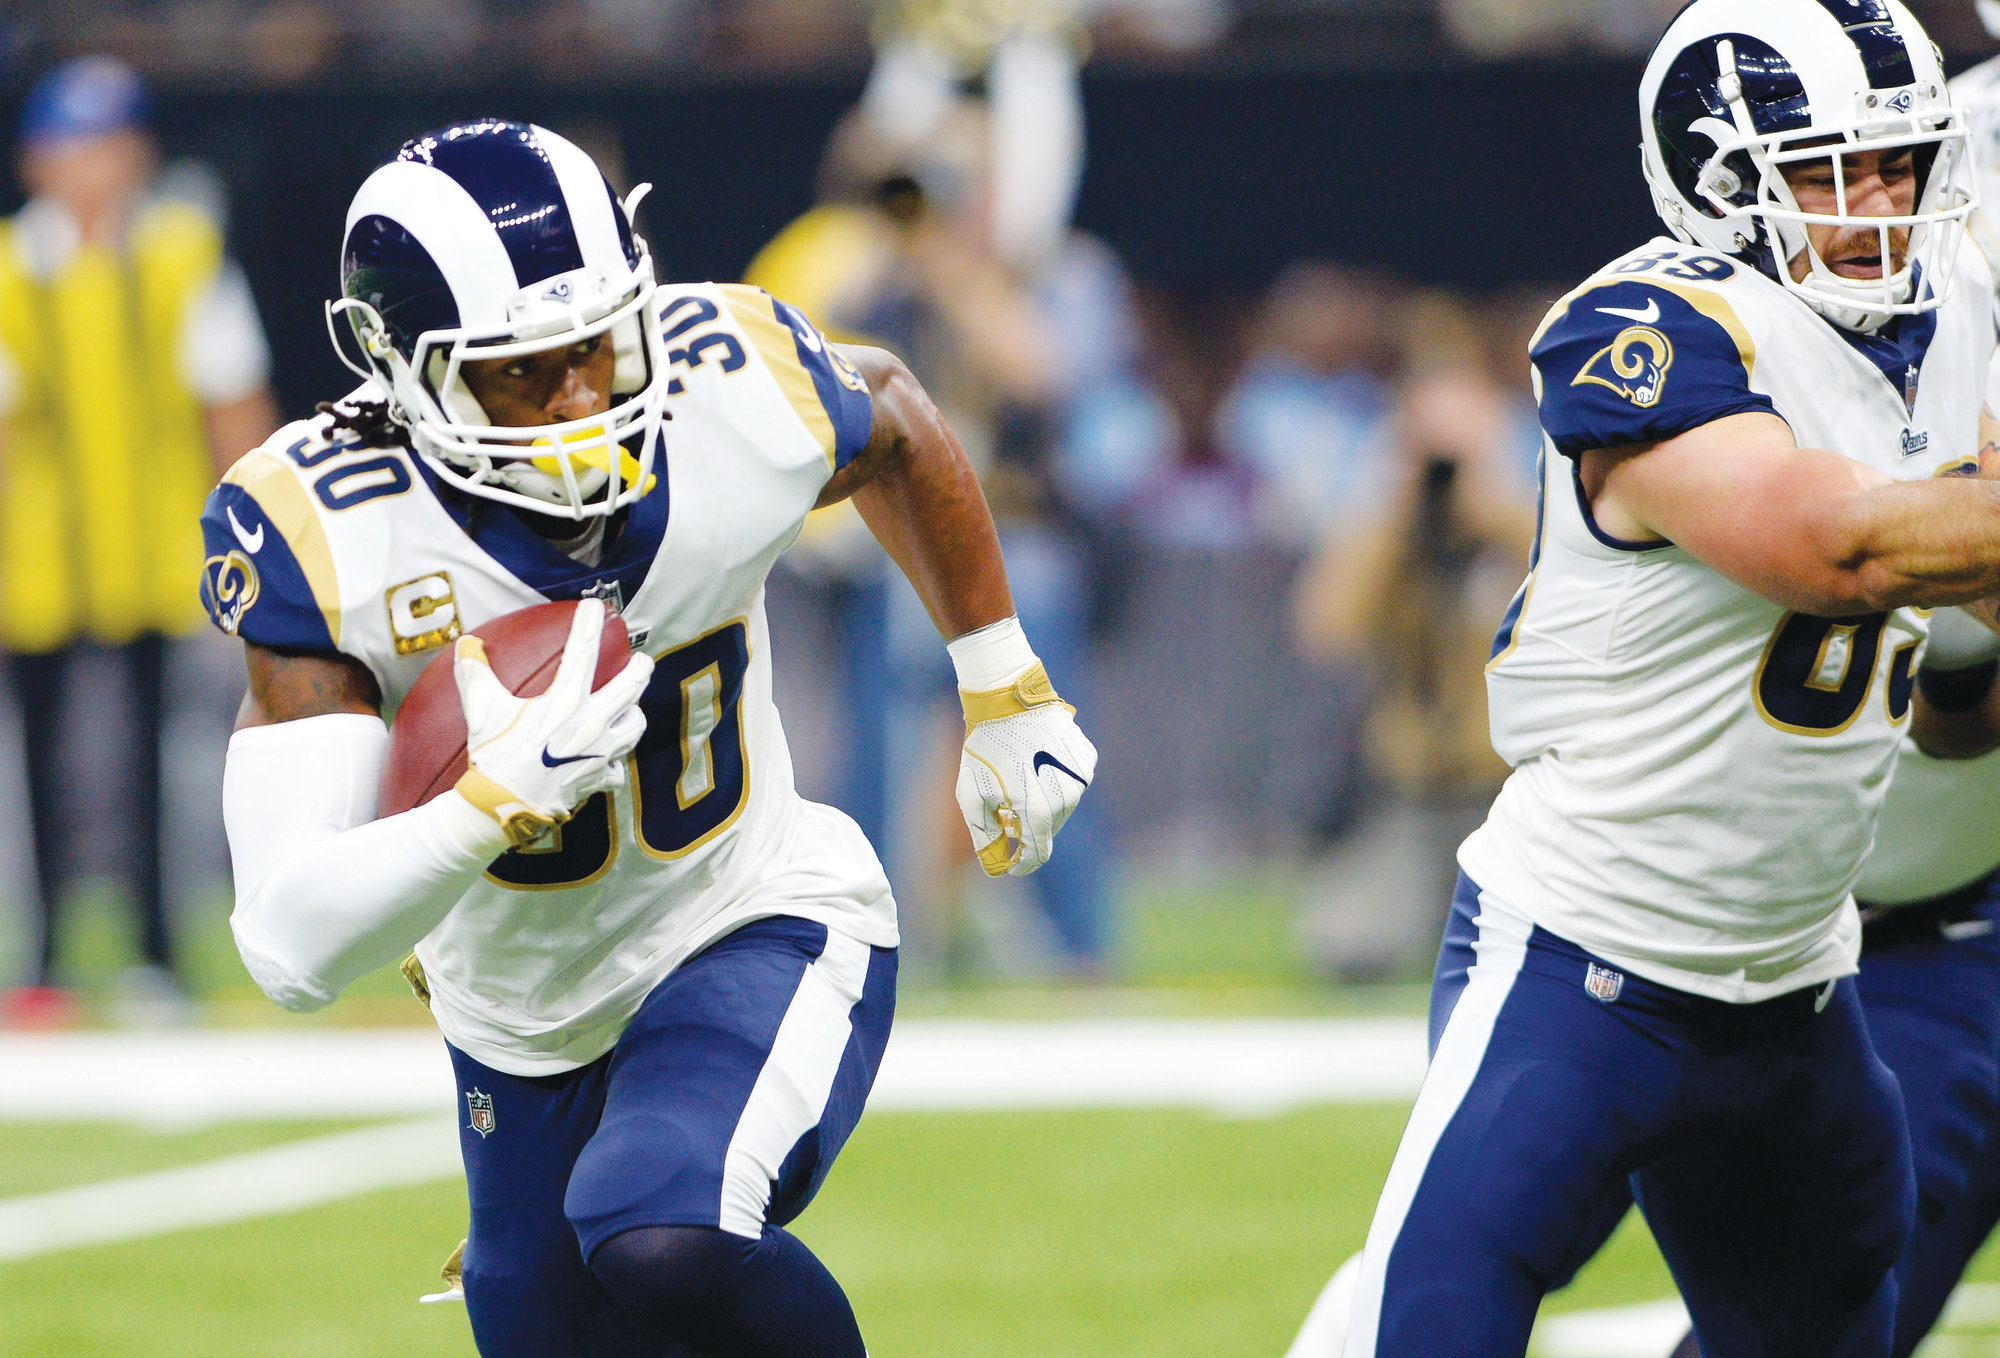 976a8b42c Los Angeles running back Todd Gurley (30) carries for a touchdown in the  first